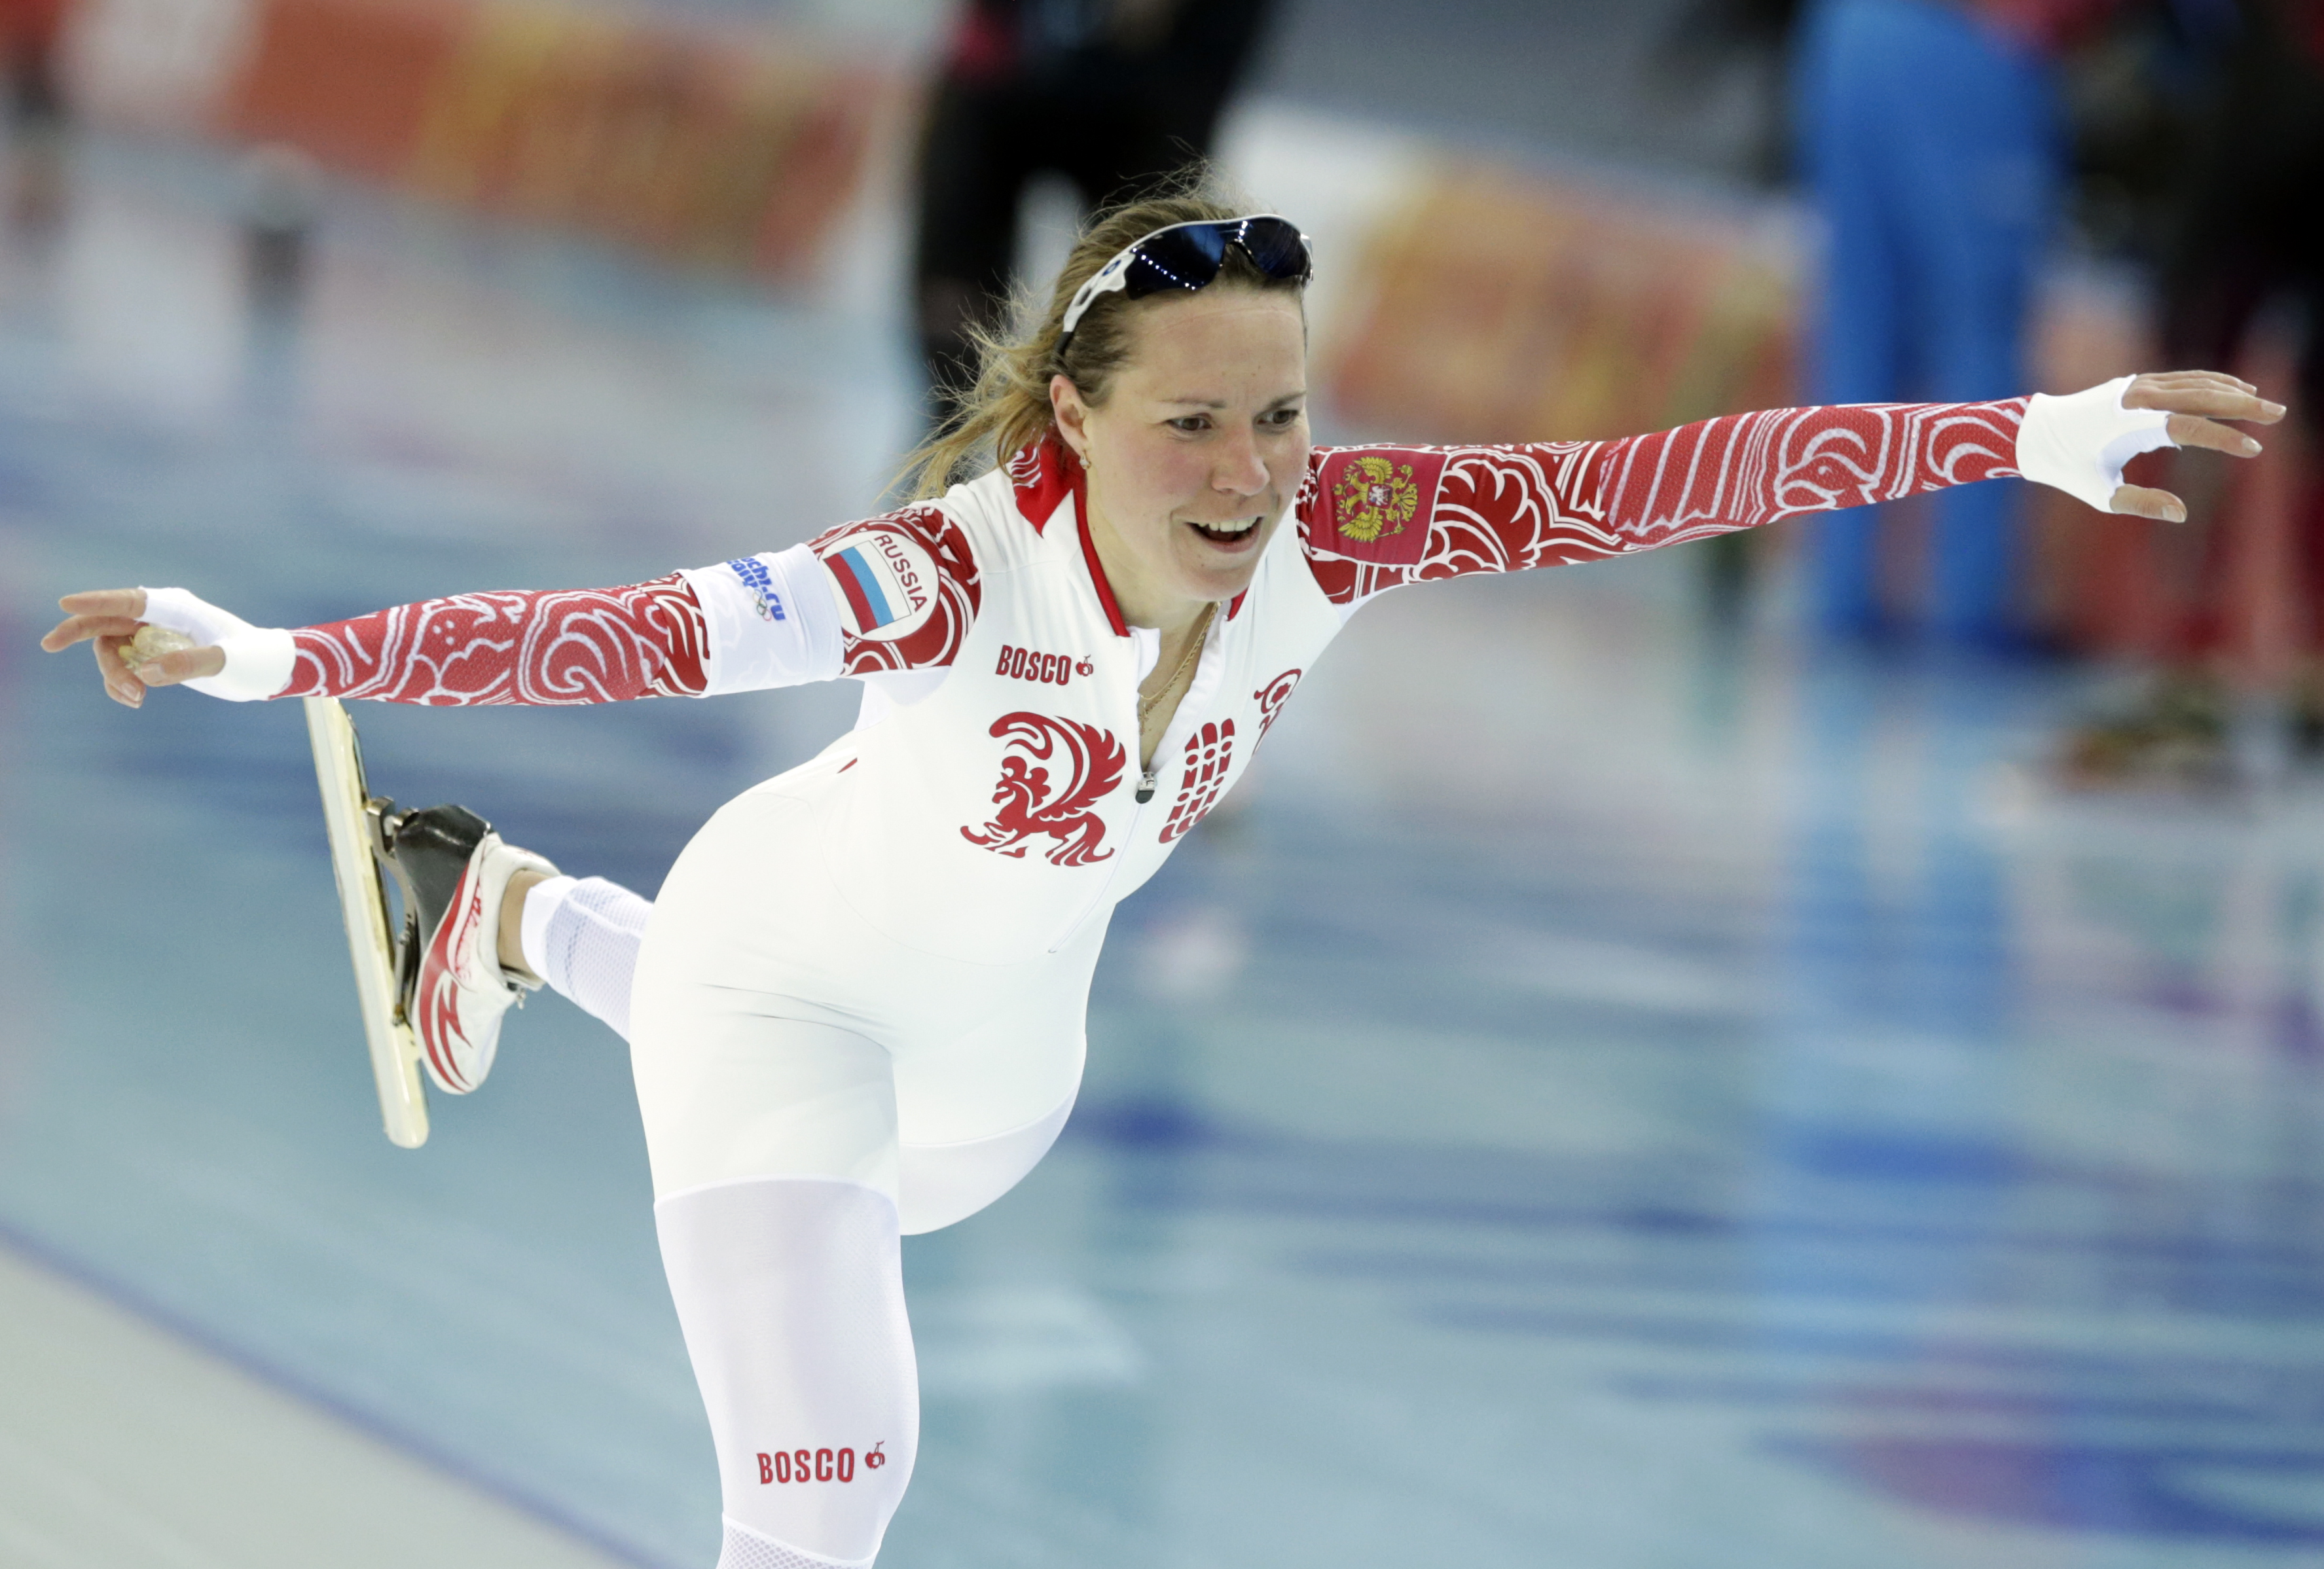 Russia's Olga Graf celebrates her time after competing in the women's 3,000-meter speedskating race at the Adler Arena Skating Center during the 2014 Winter Olympics, Sunday, Feb. 9, 2014, in Sochi, Russia. (AP Photo/Matt Dunham)